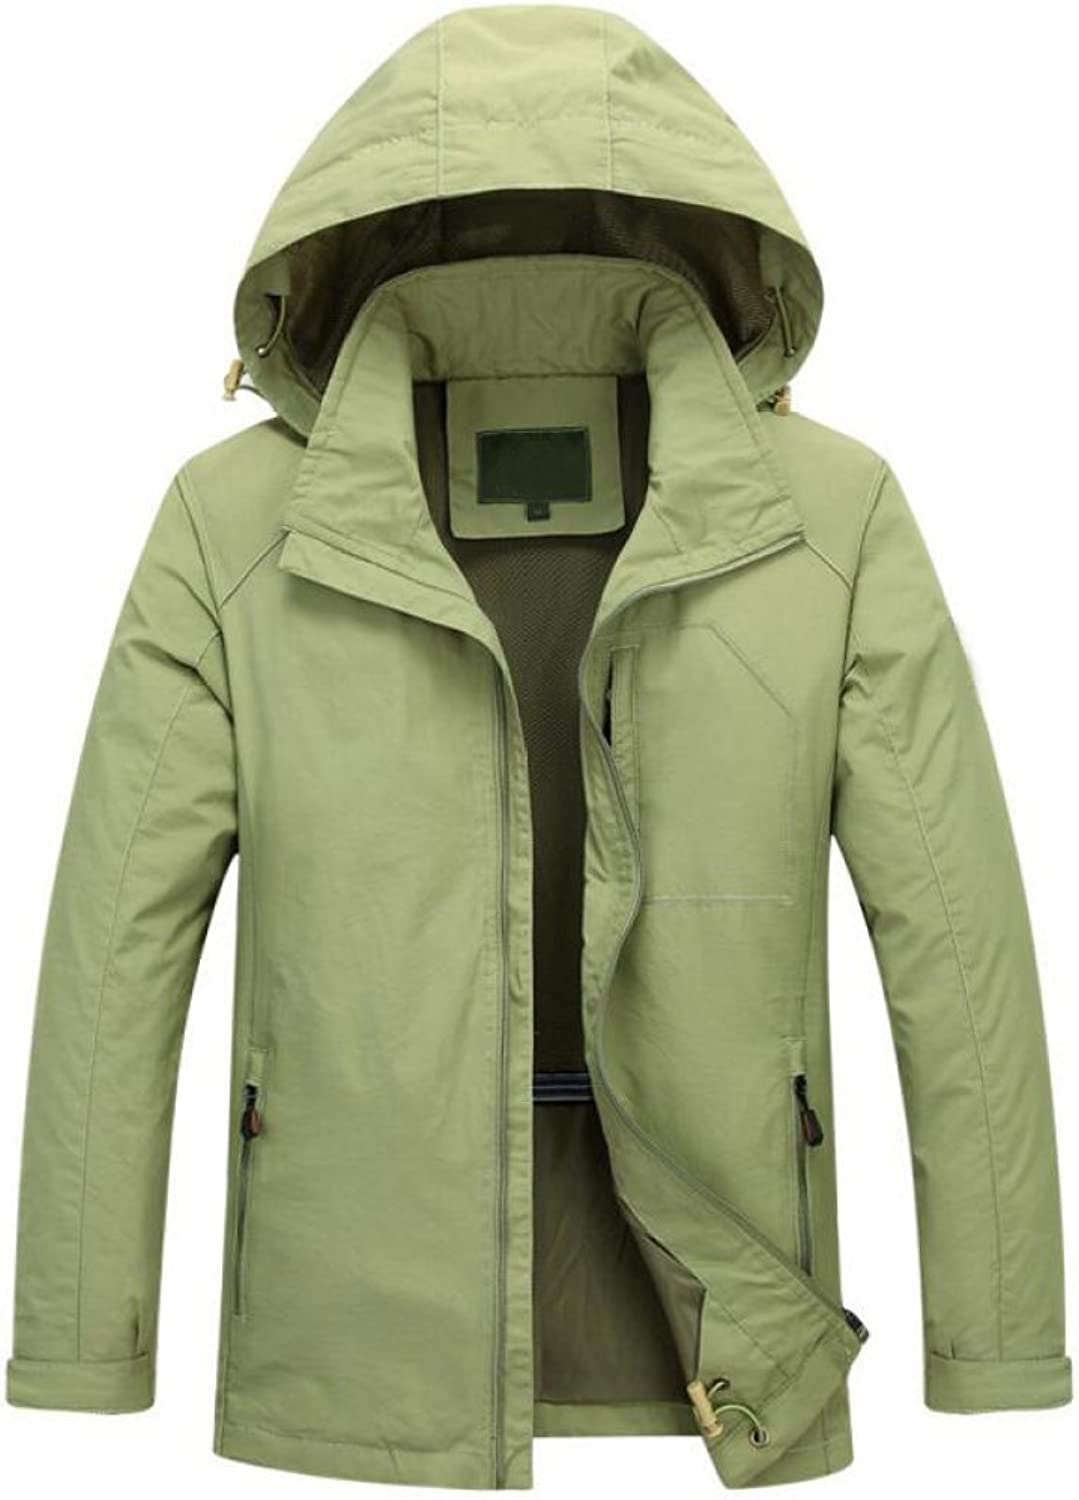 PFSYR Men's Jacket Spring and Autumn Casual QuickDrying Jacket Breathable Loose Jacket